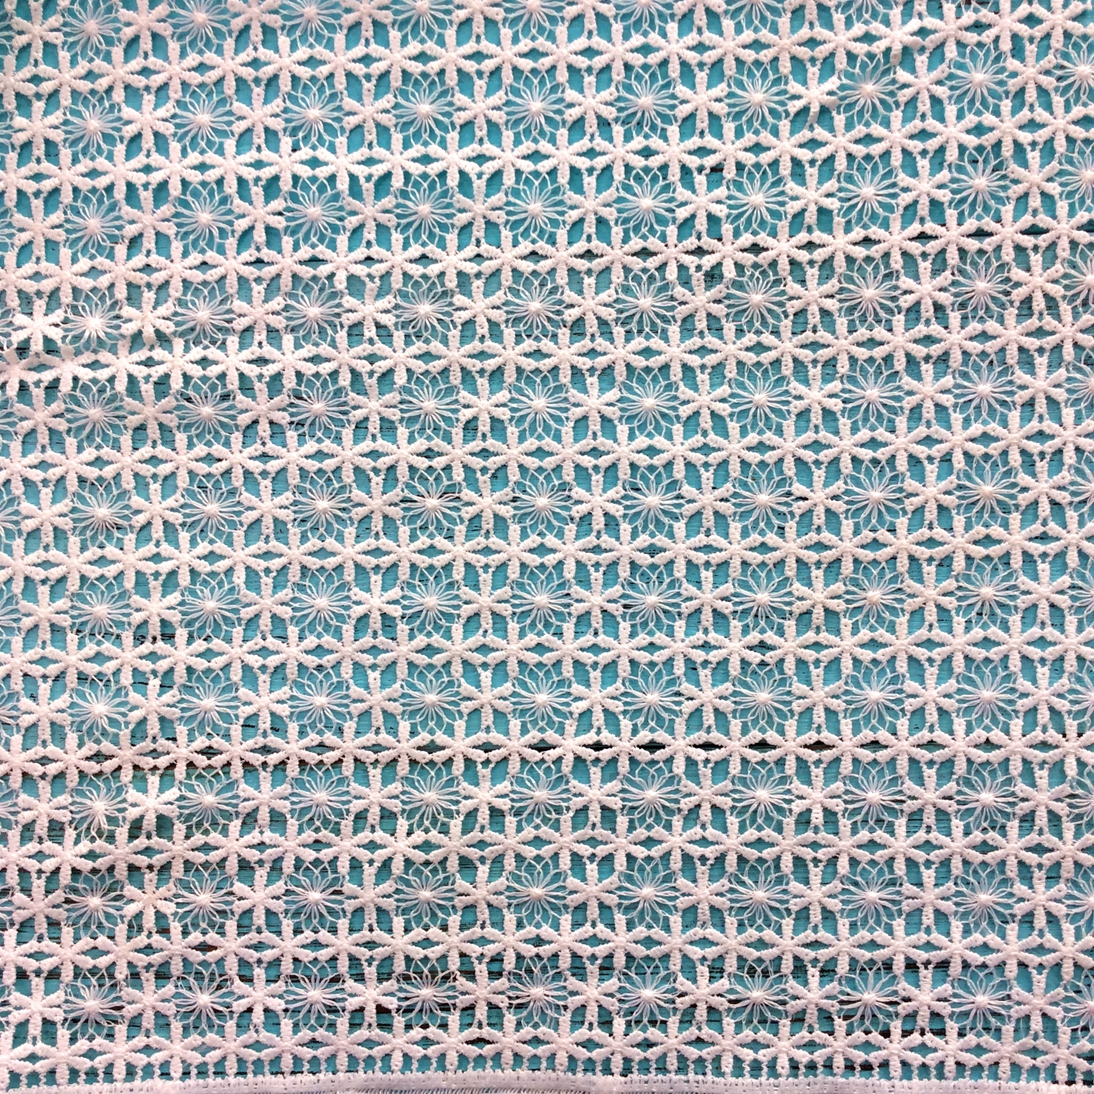 Cheap Polish Japanese French Lace Embroidery Fabric